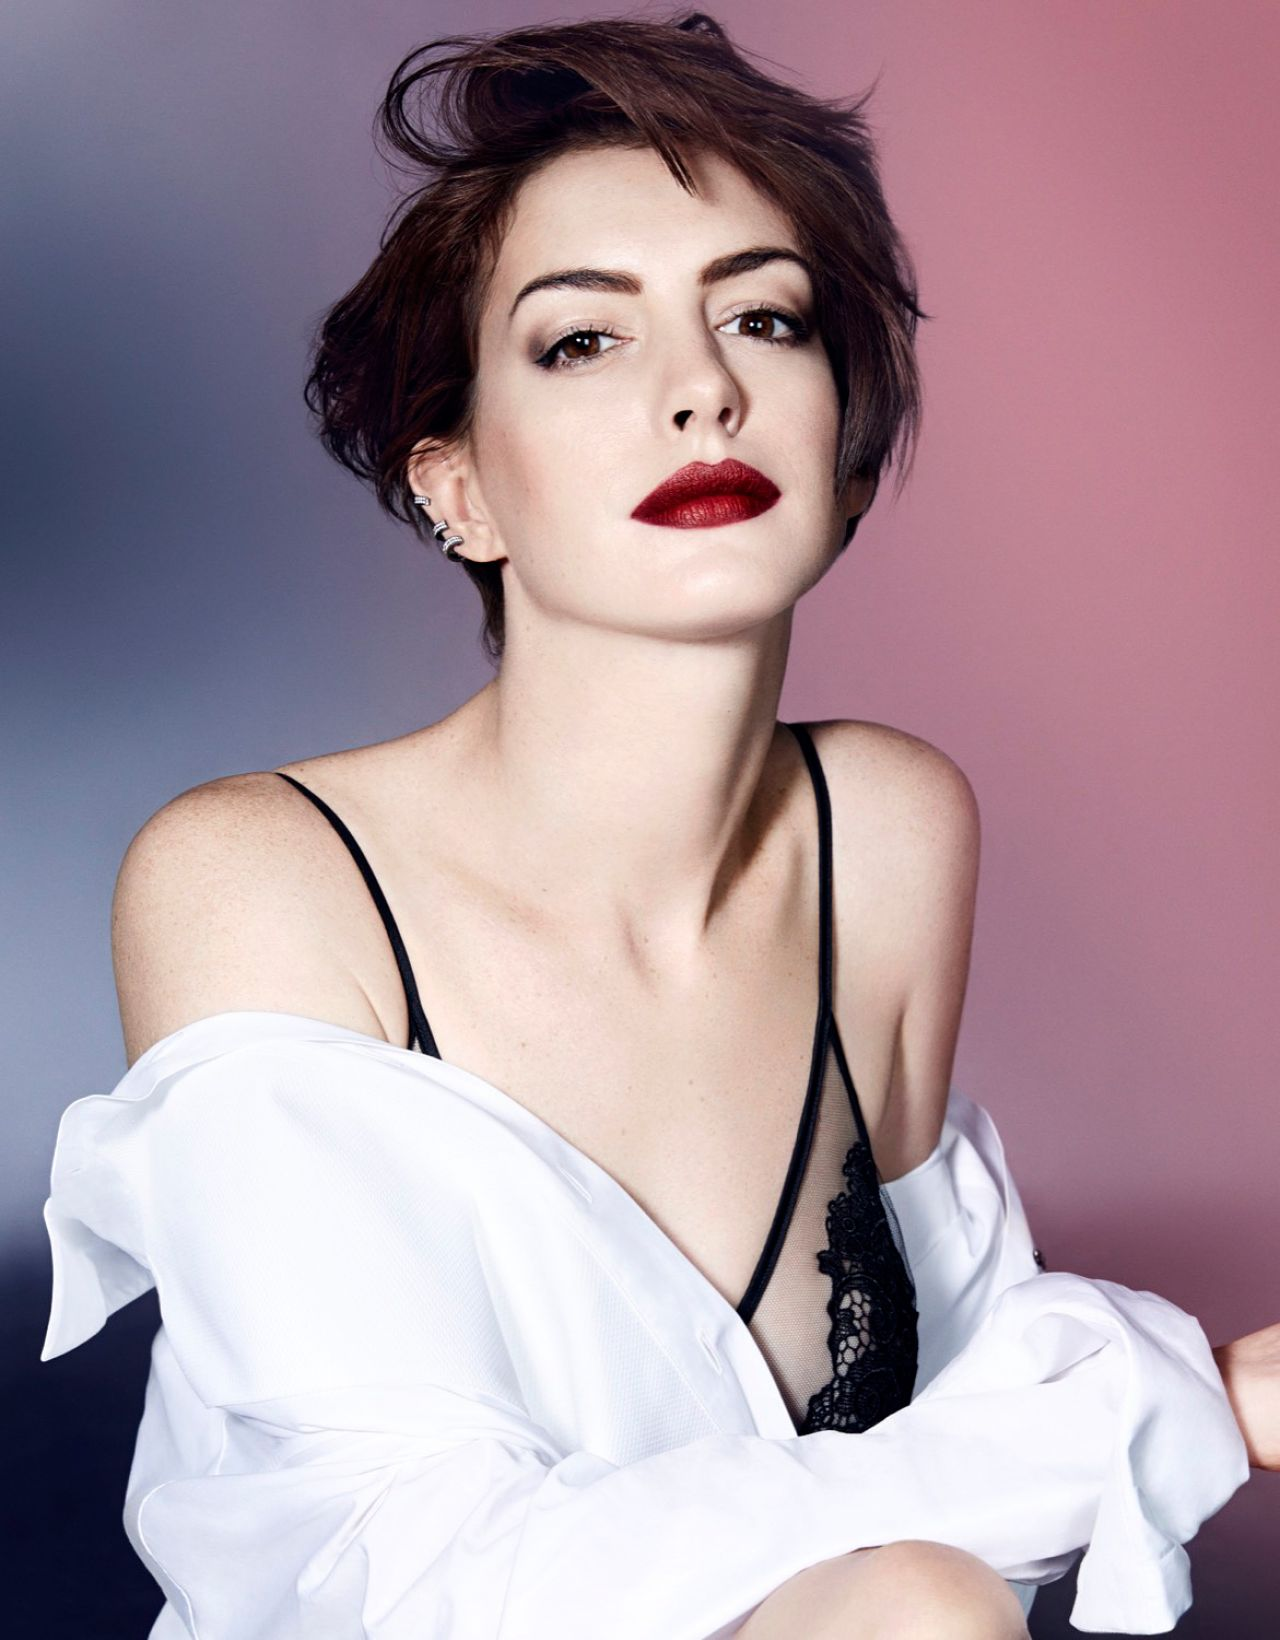 anne-hathaway-photoshoot-for-elle-magazine-uk-november-2014-issue_1